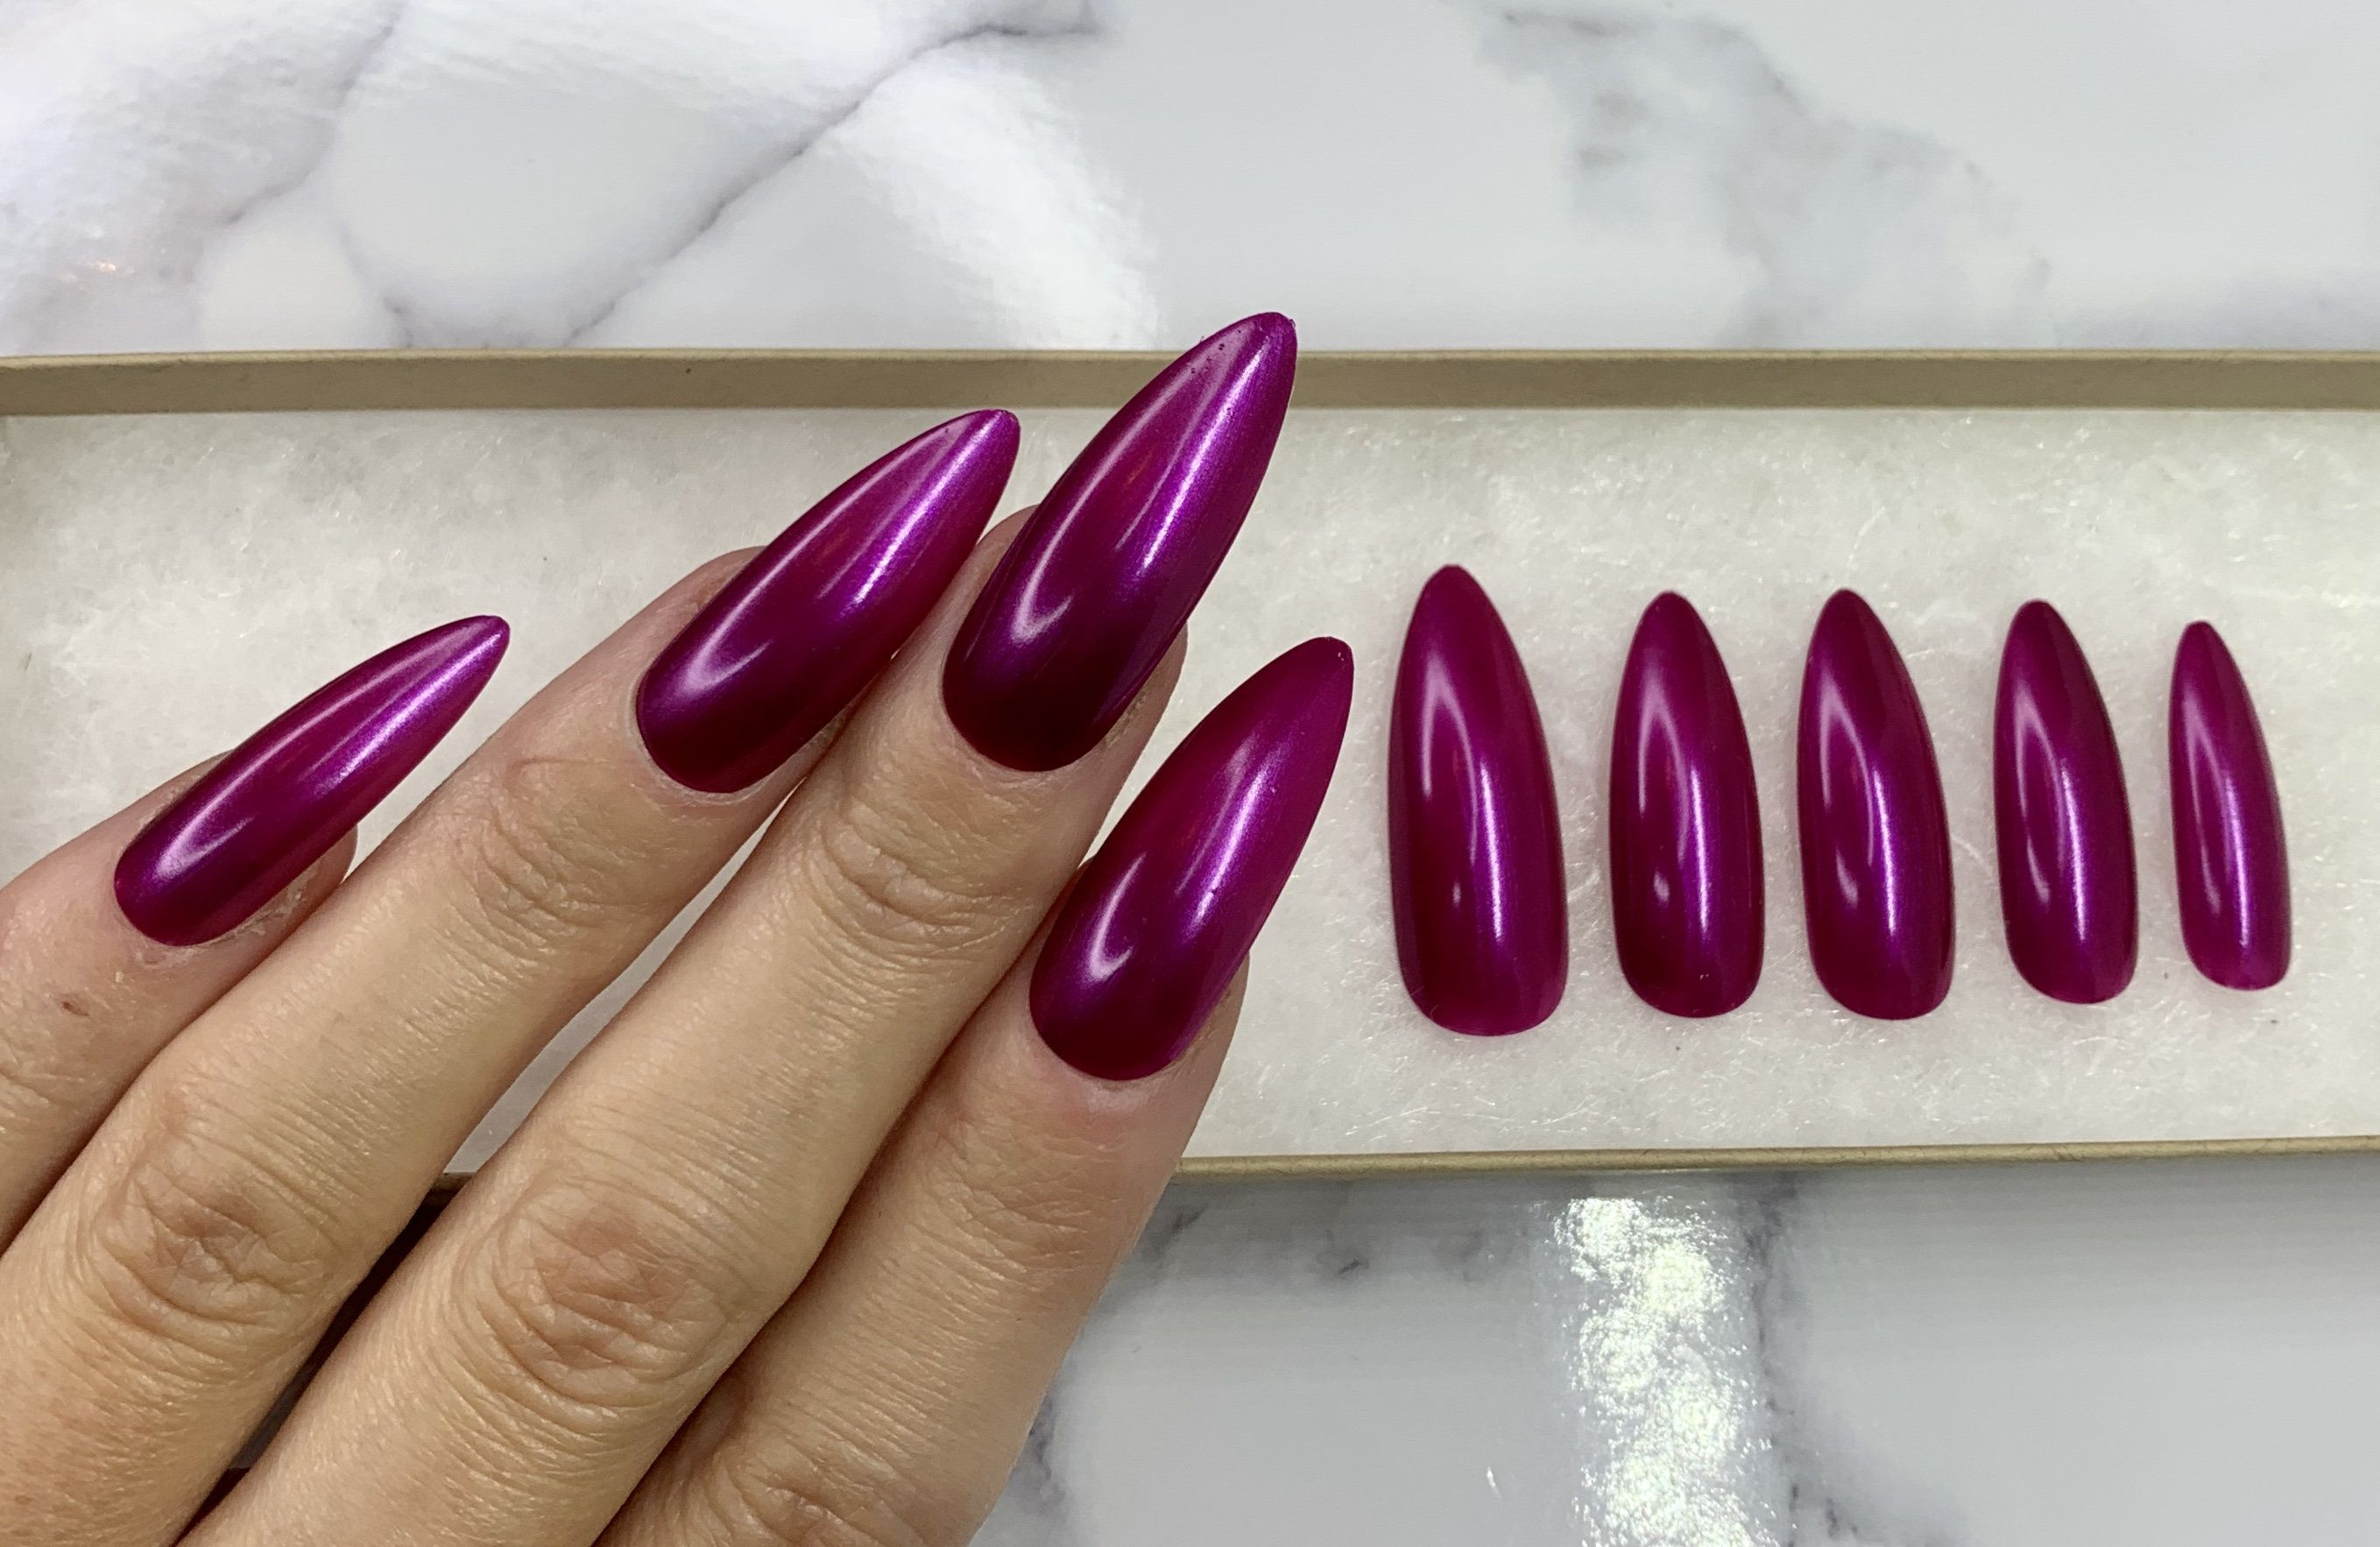 New Nail Trend Extra Long Nails The Glossychic Long Nails Acrylic Nails Stiletto Long Acrylic Nails